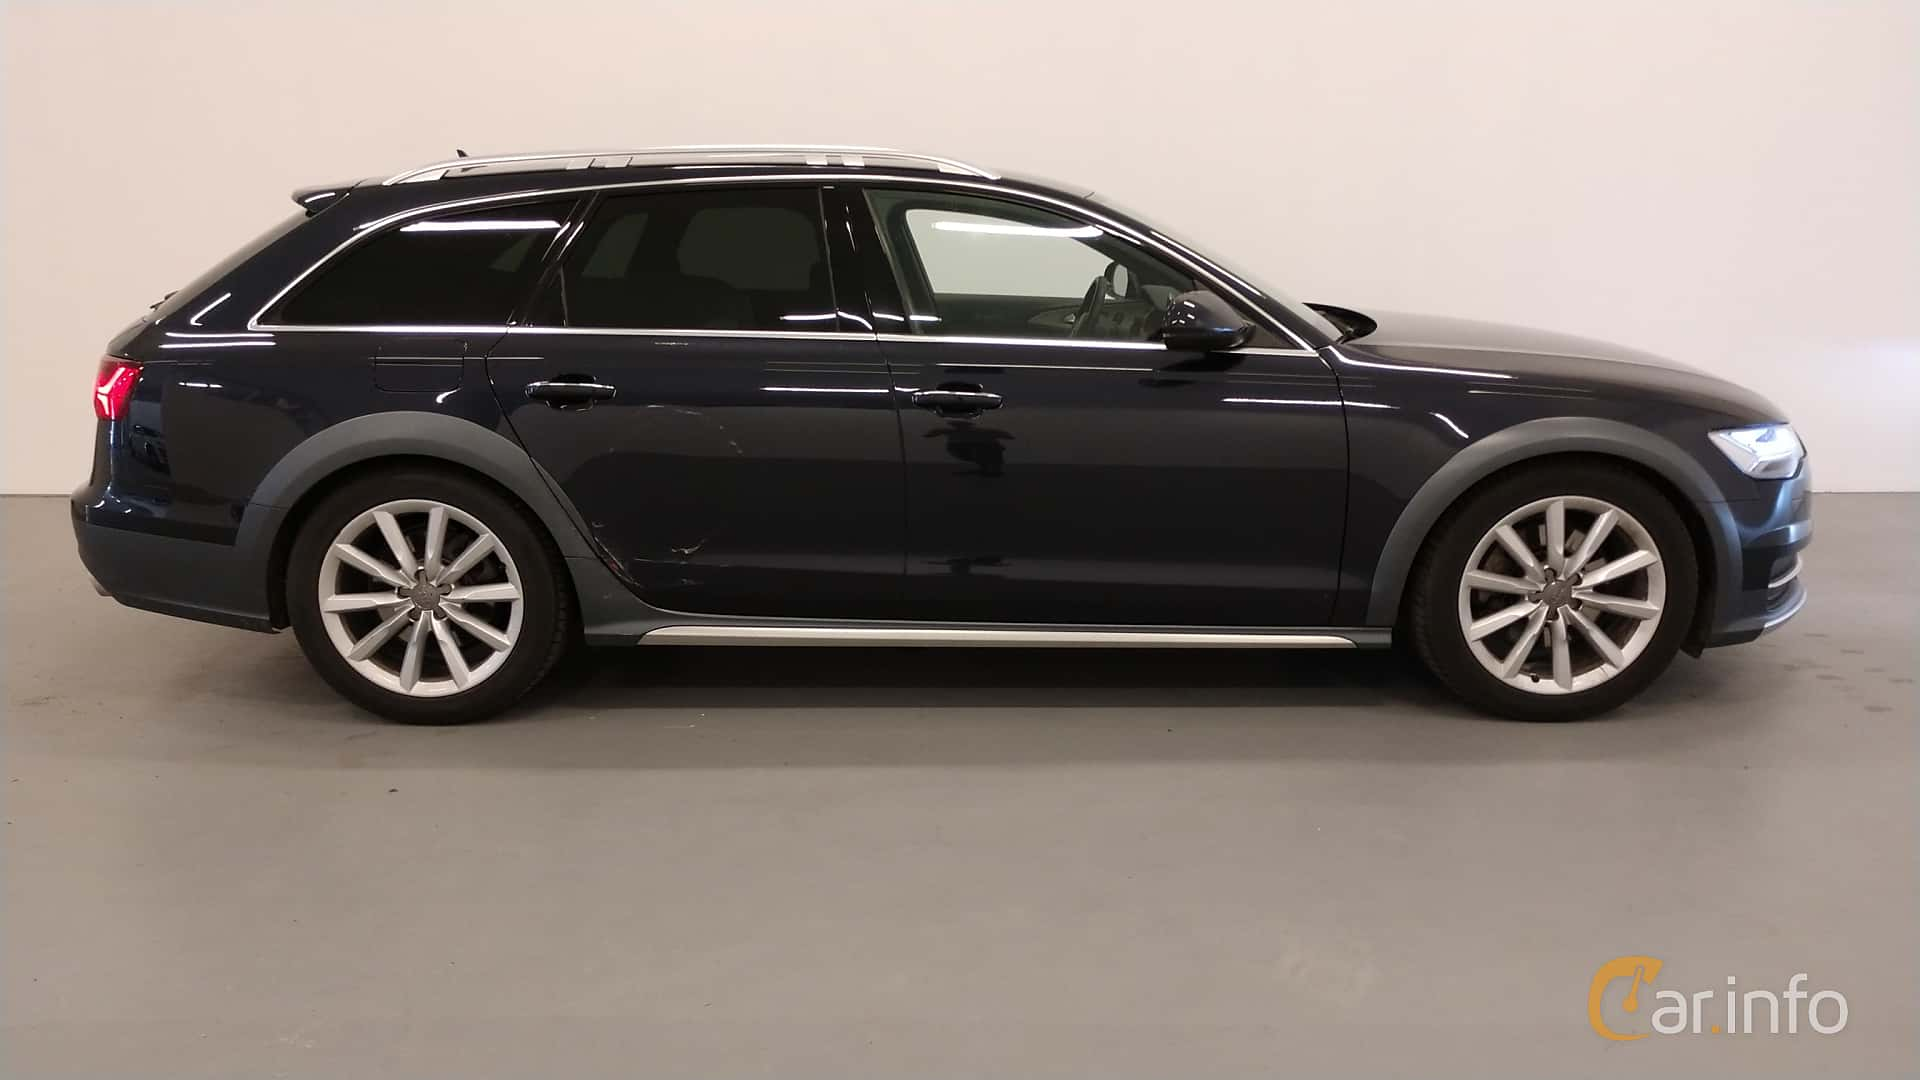 6 images of Audi A6 allroad quattro 3 0 TDI V6 clean diesel